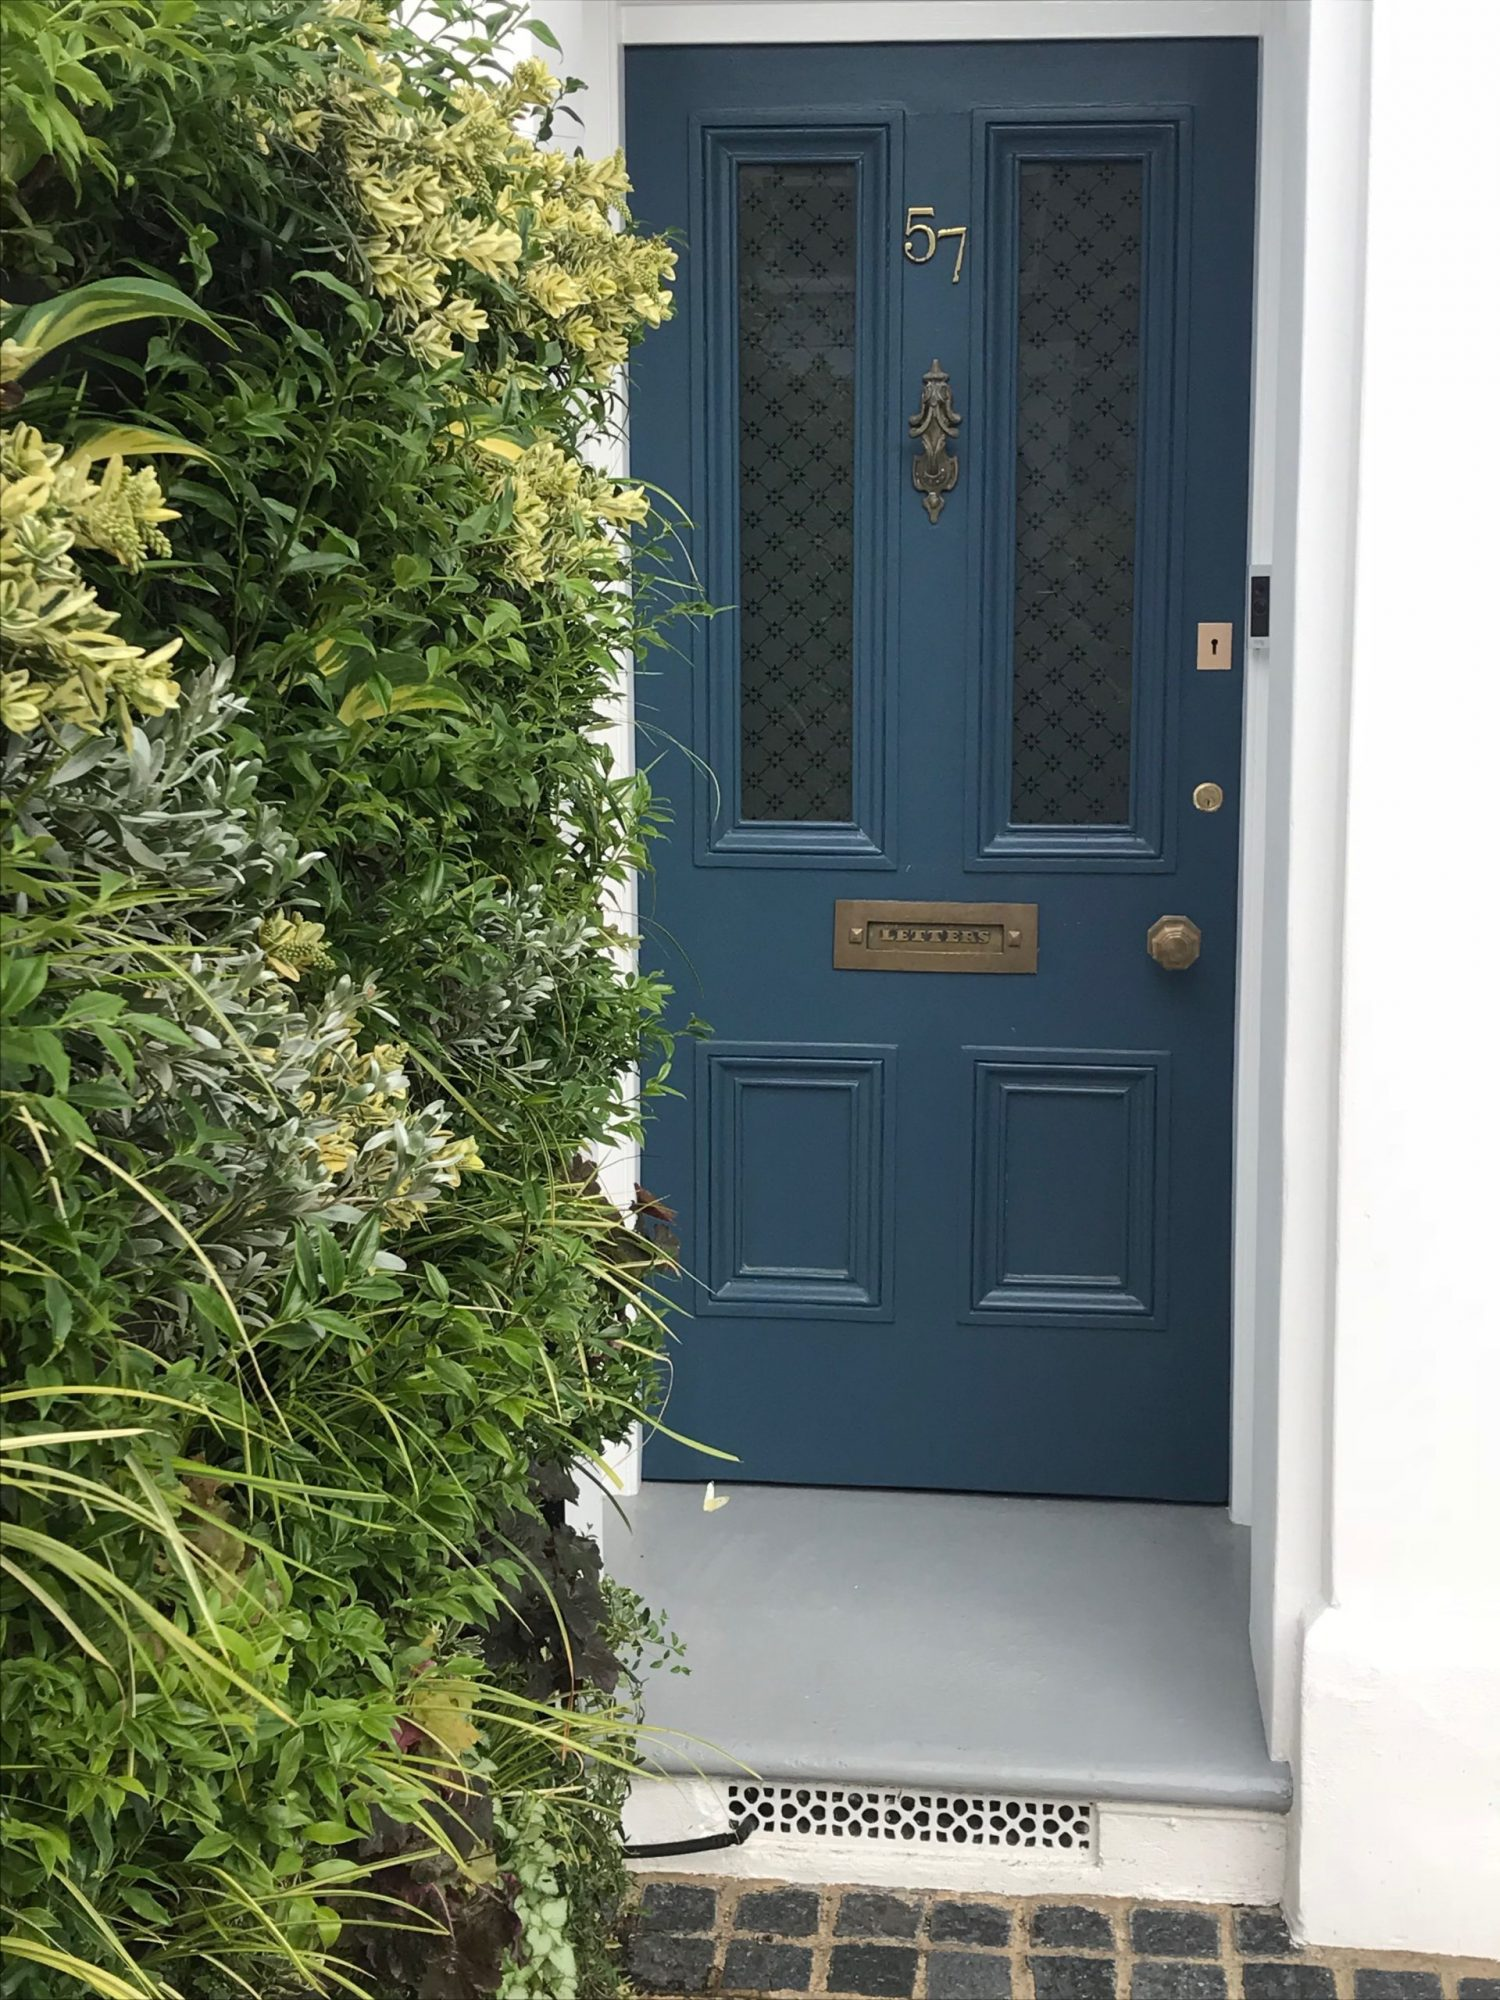 Transform your home with PlantBox